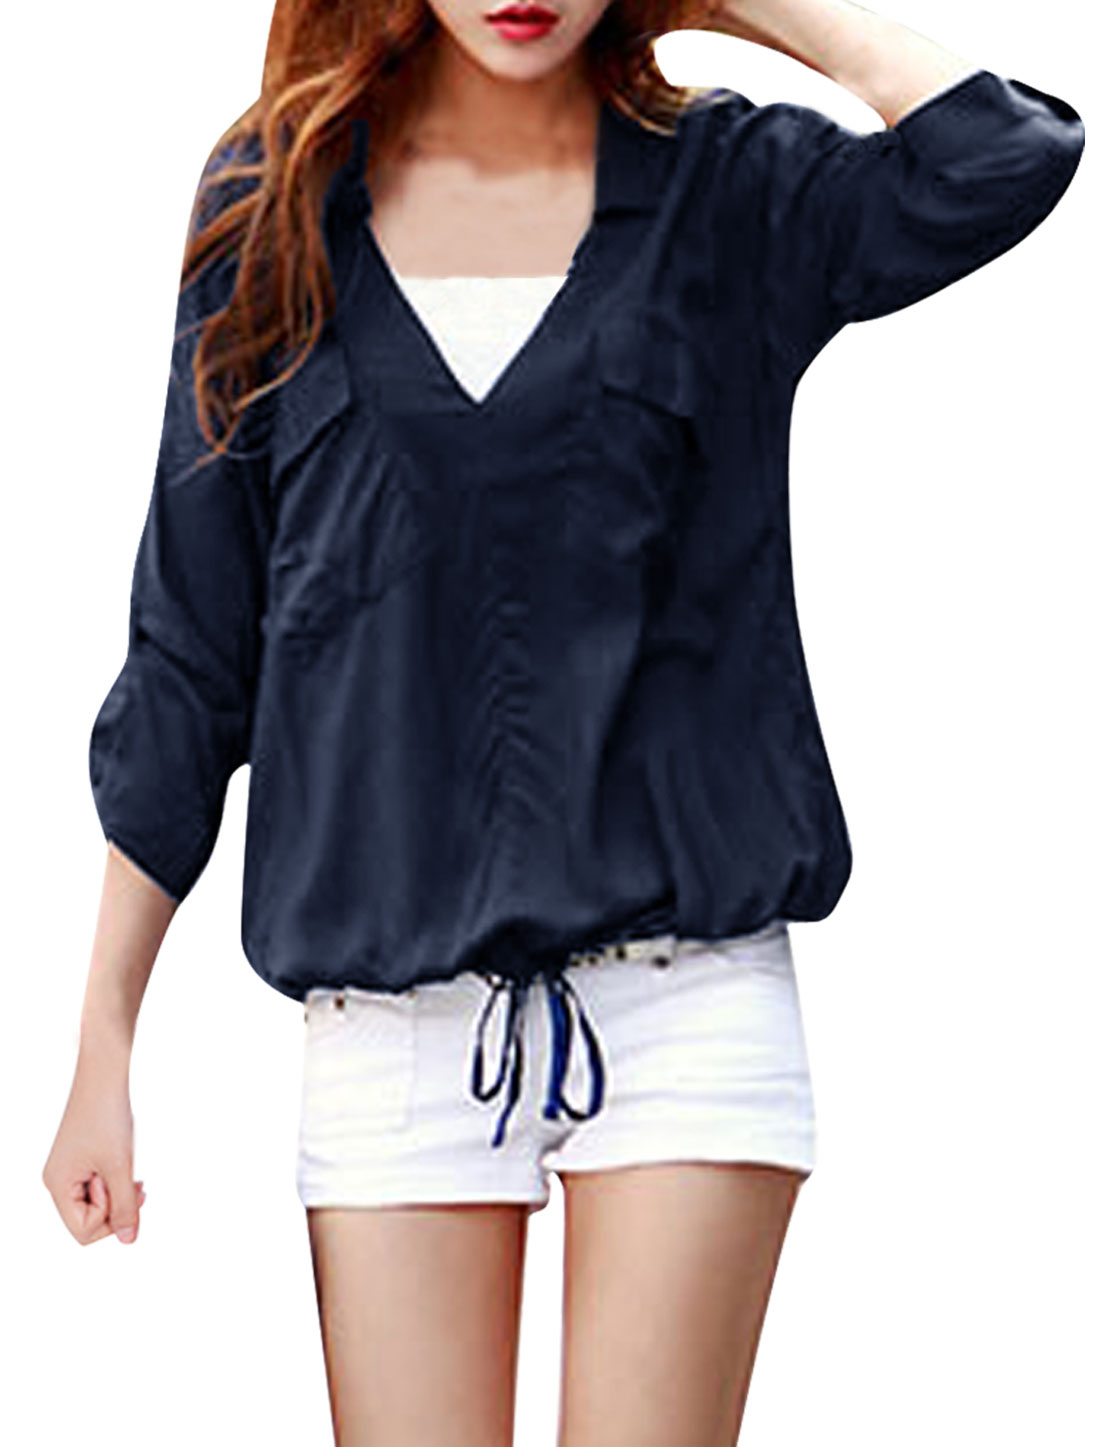 Women Roll Up Sleeve Drawstring Top Shirt Navy Blue S